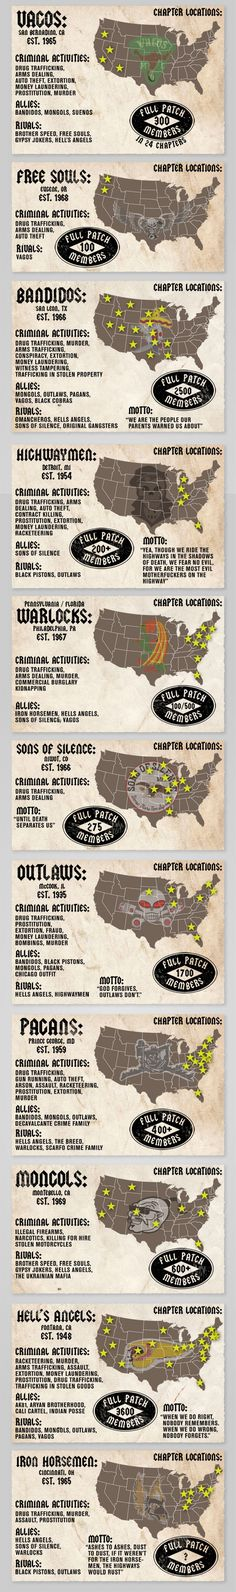 Biker Gangs of America | Best Infographics